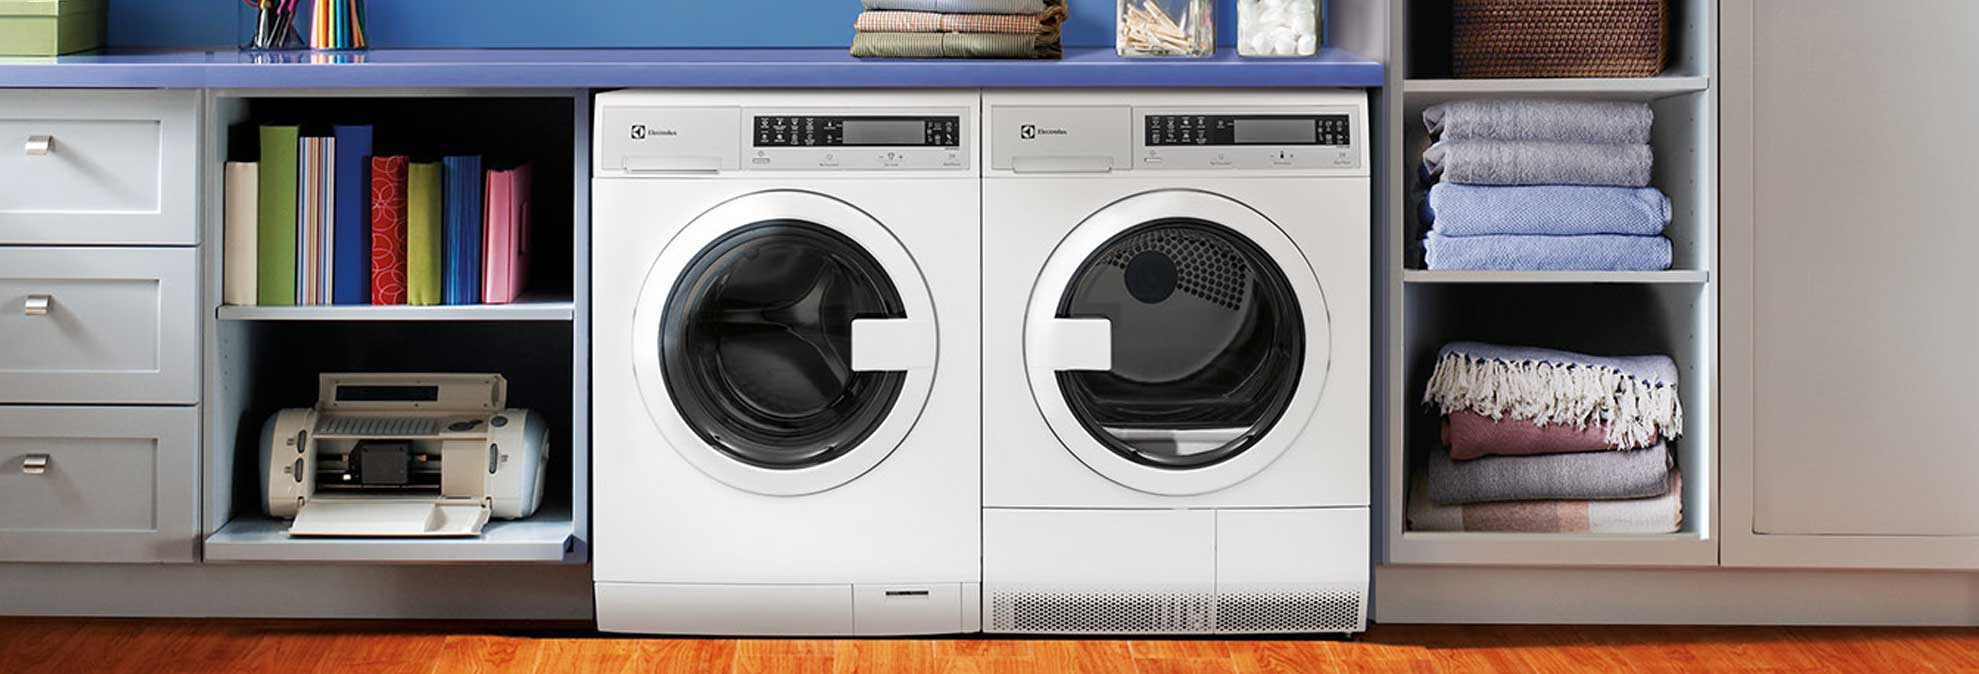 What To Know About A Compact Washer And Dryer Set Consumer Reports